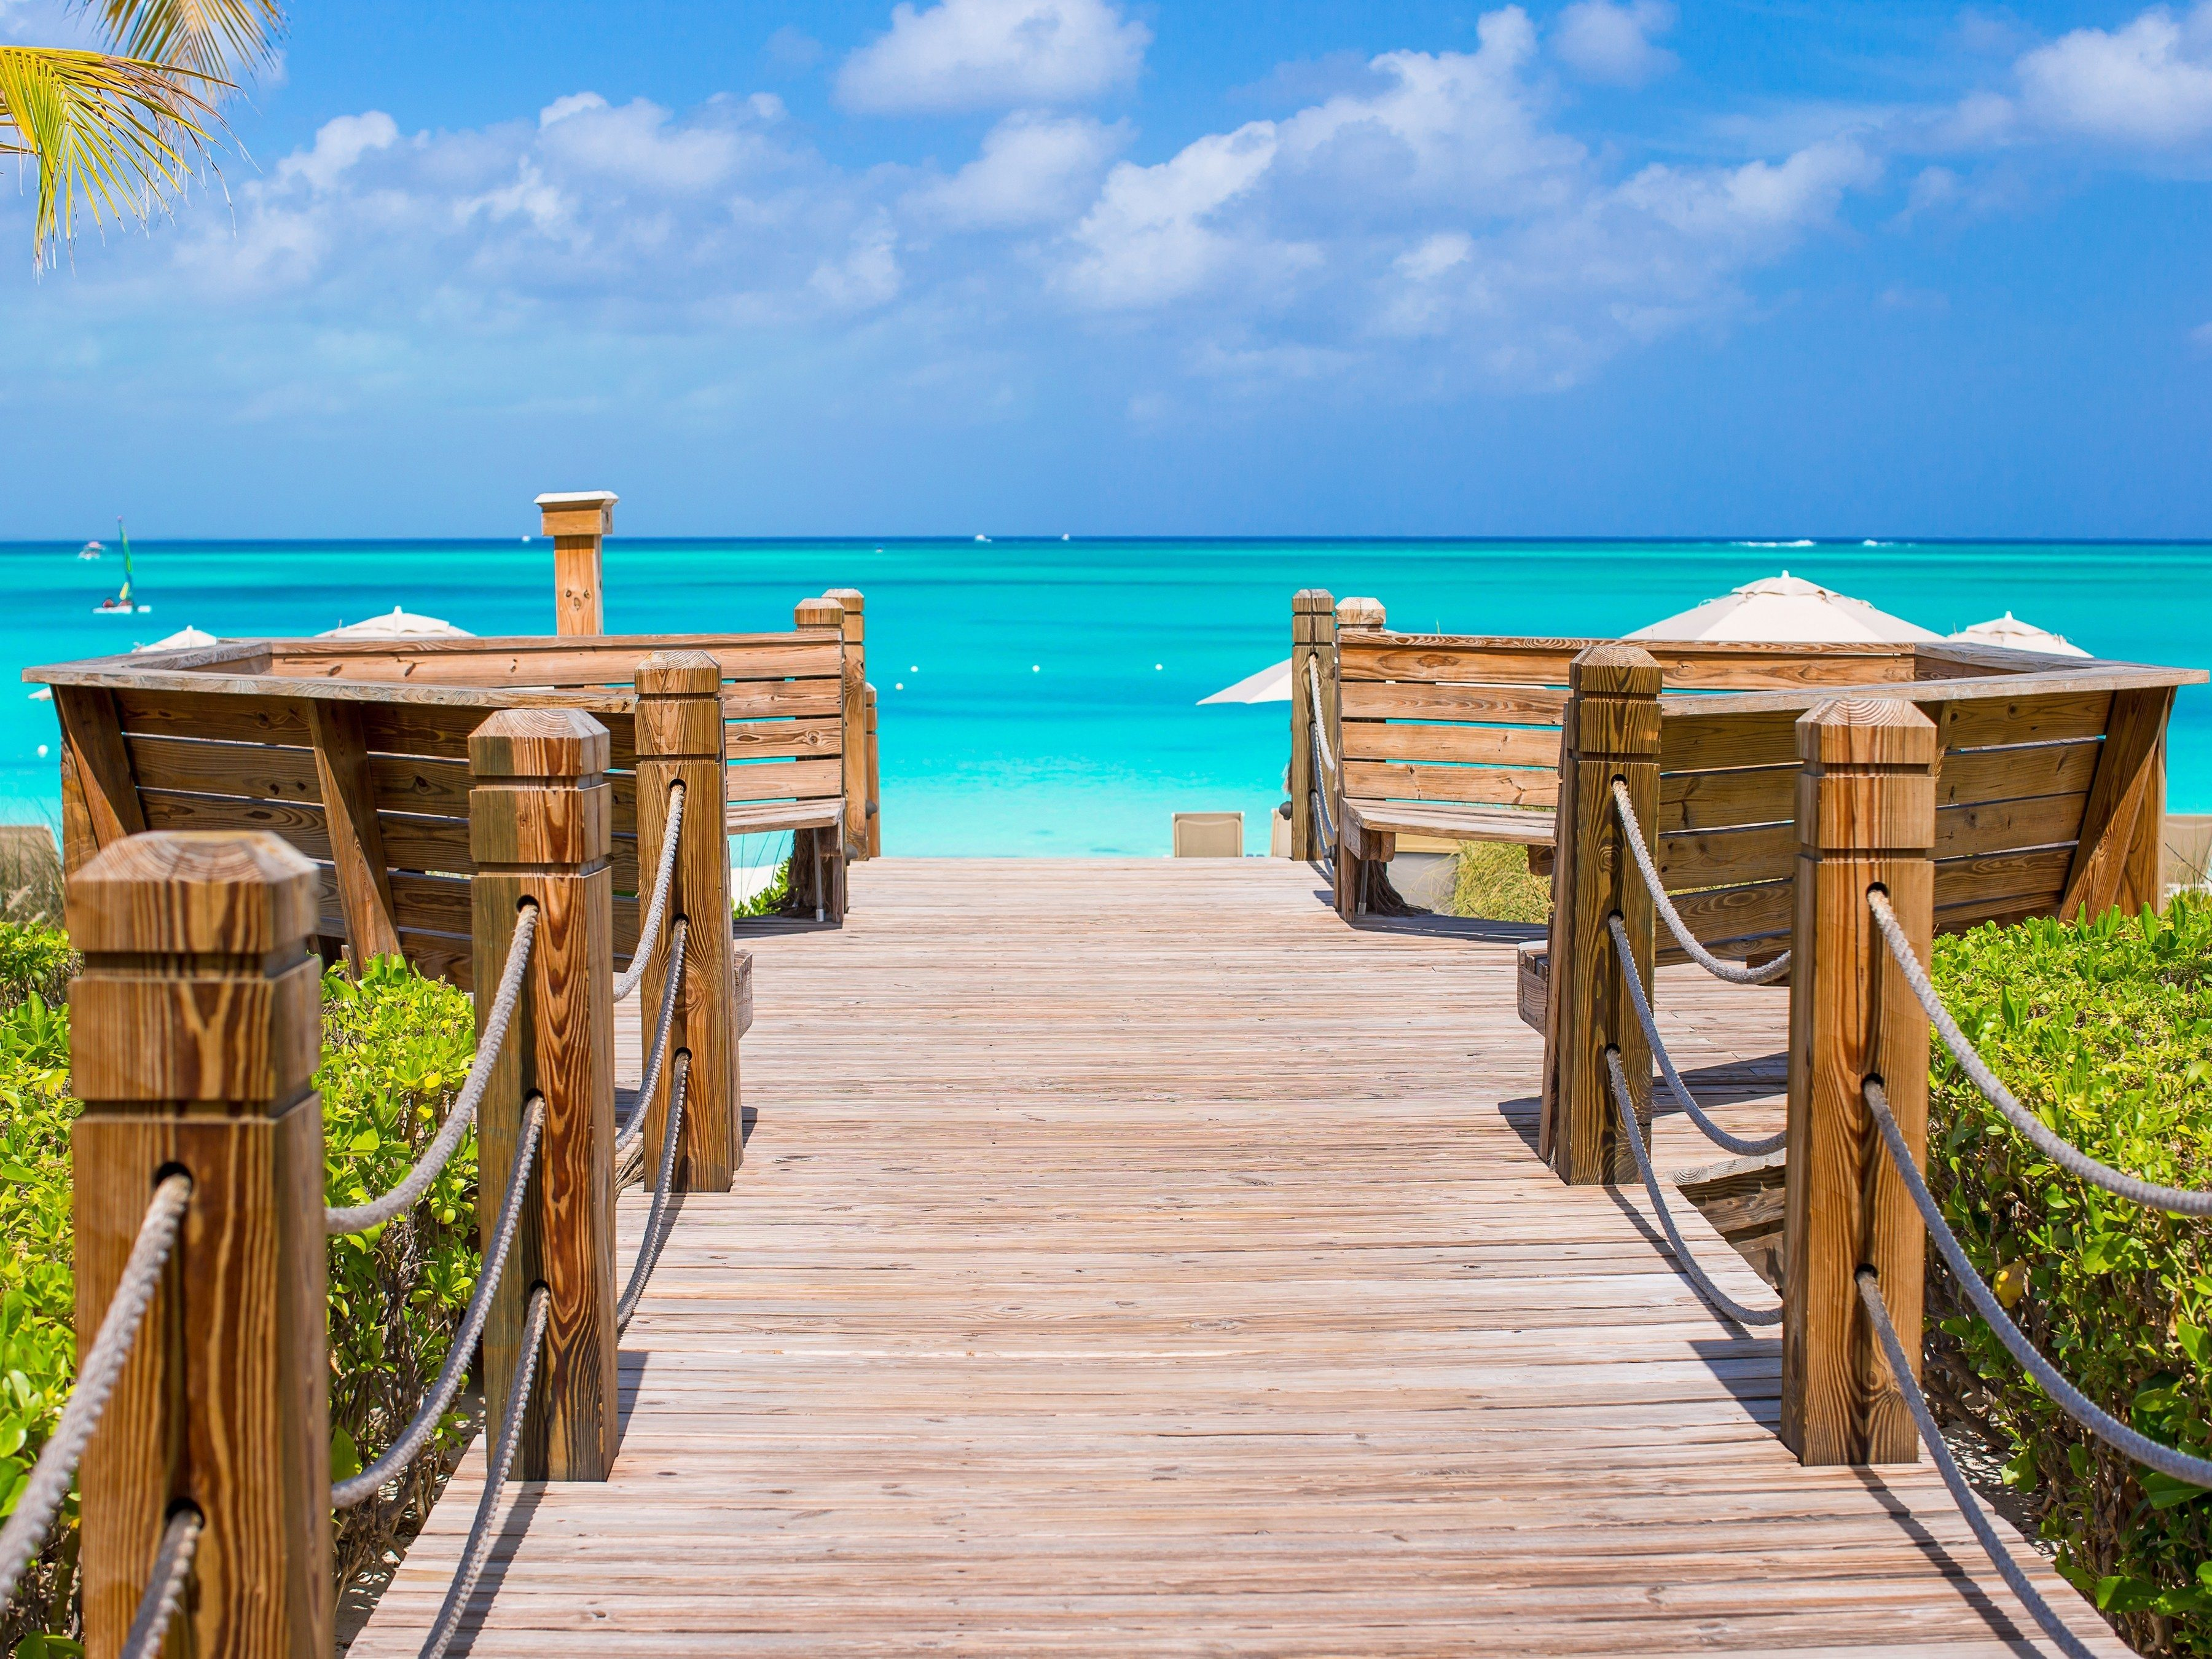 World's Sexiest Travel Destinations: Parrot Cay, Turks and Caicos